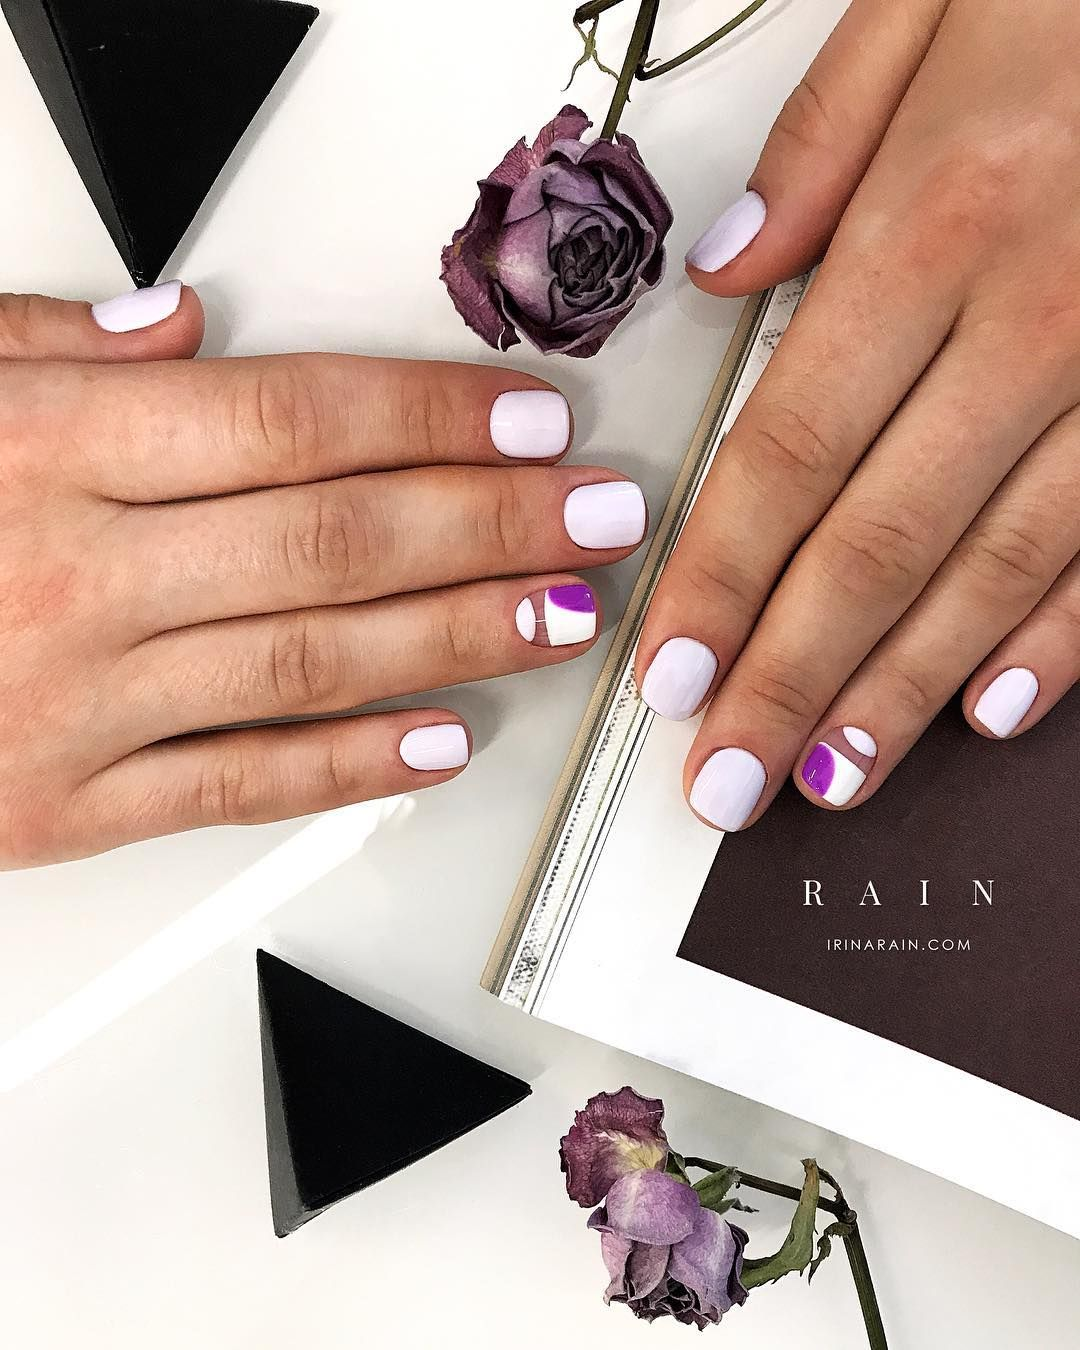 Pin by Julie Henderson on newnails | Pinterest | Neutral nails, Mani ...